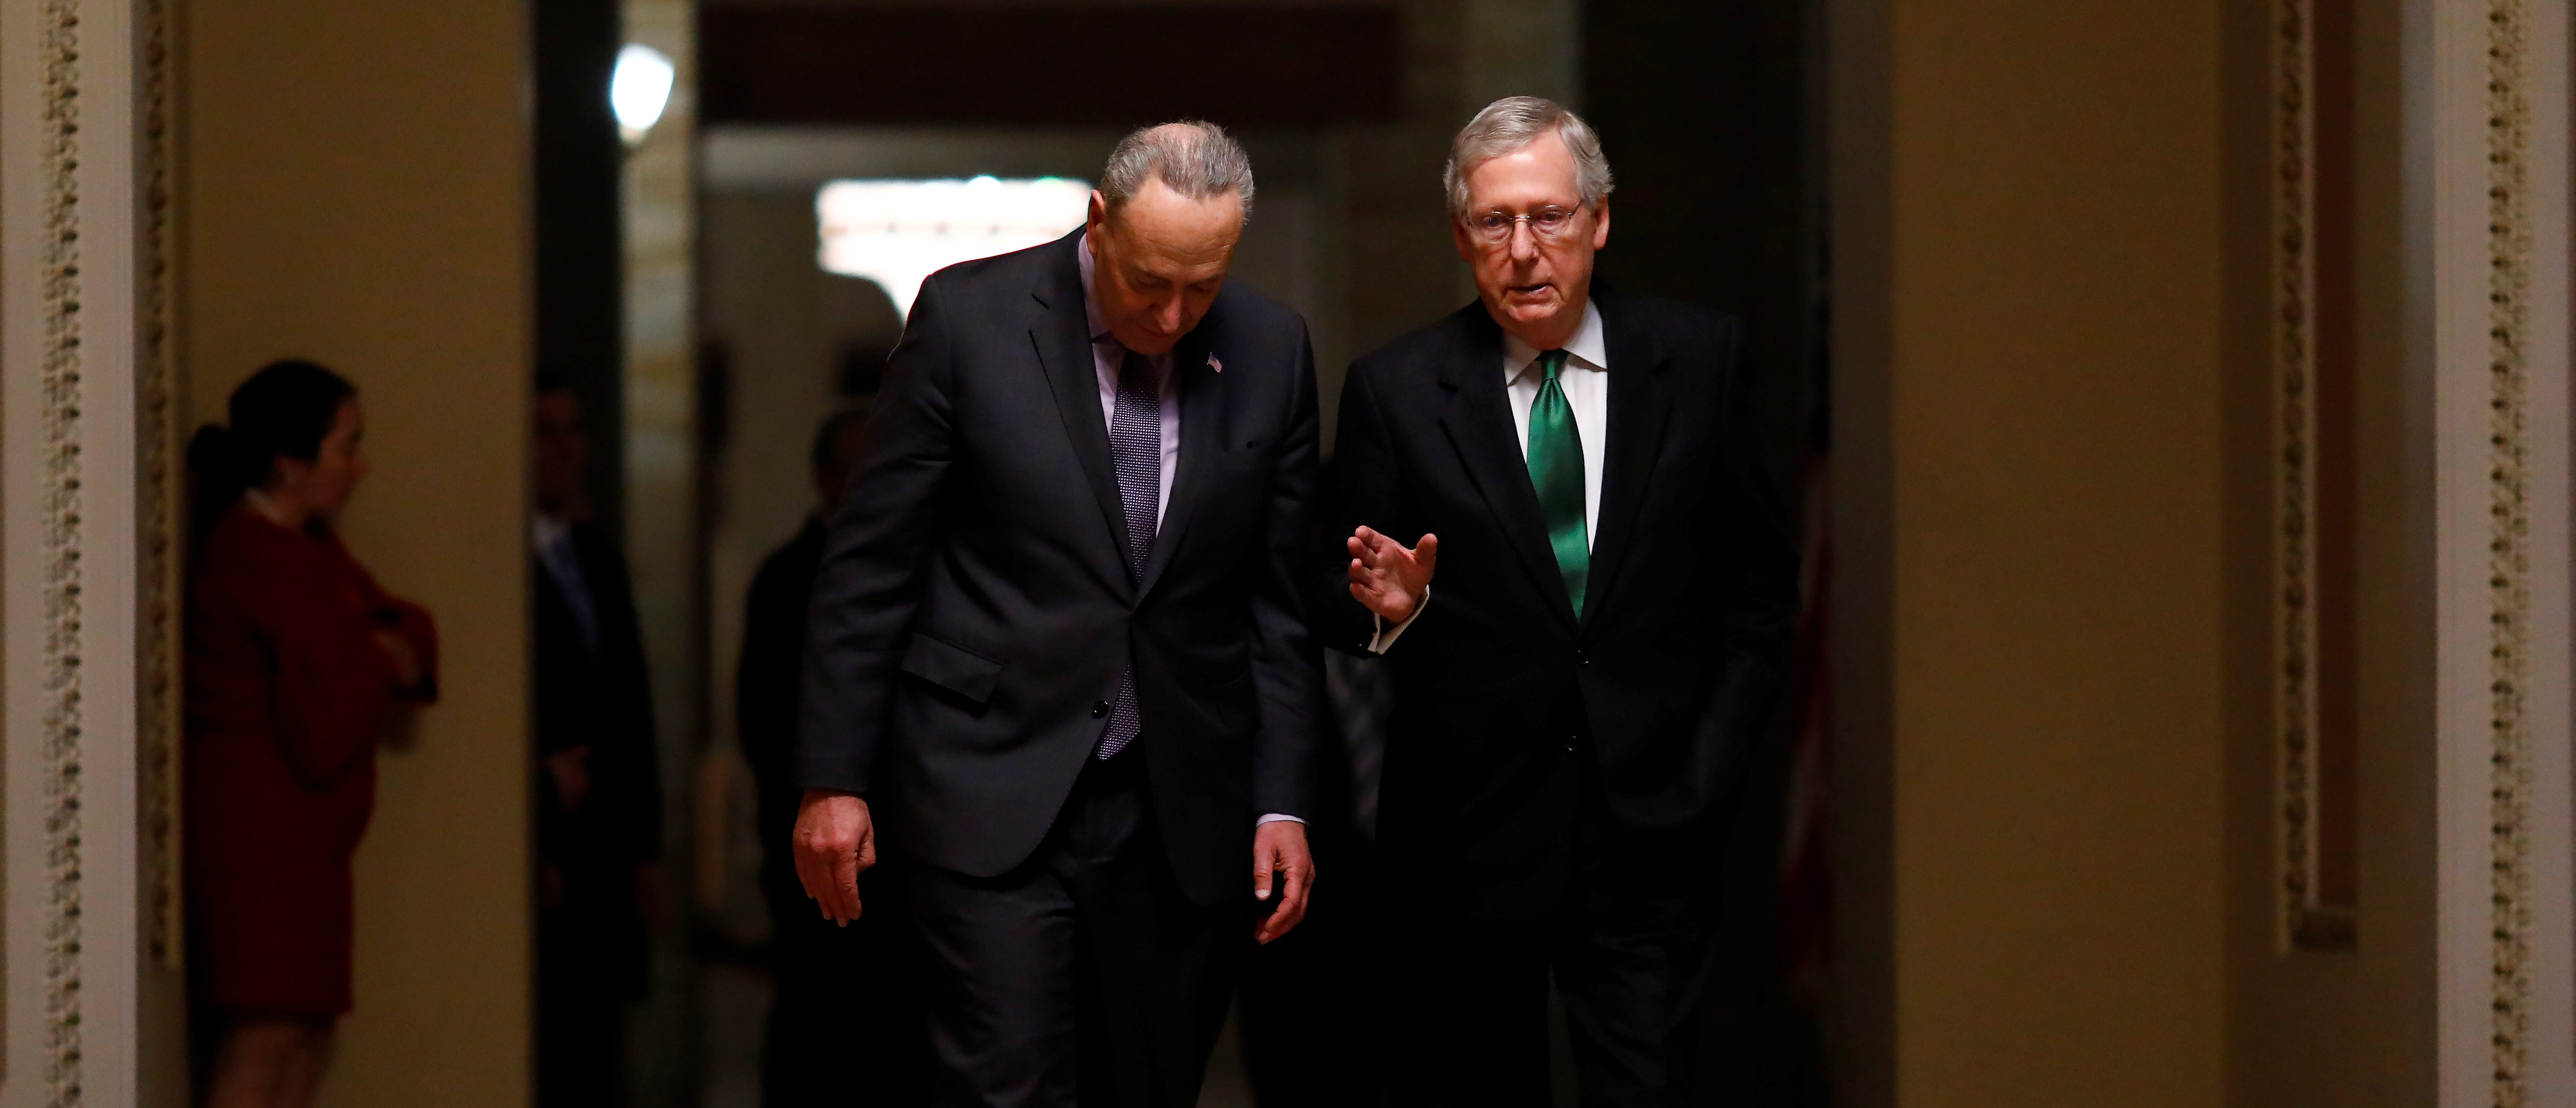 Senate Minority Leader Chuck Schumer (D-NY) and U.S. Senate Majority Leader Mitch McConnell (R-KY) walk to the Senate chamber on Capitol Hill in Washington, D.C., February 7, 2018. REUTERS/Eric Thayer